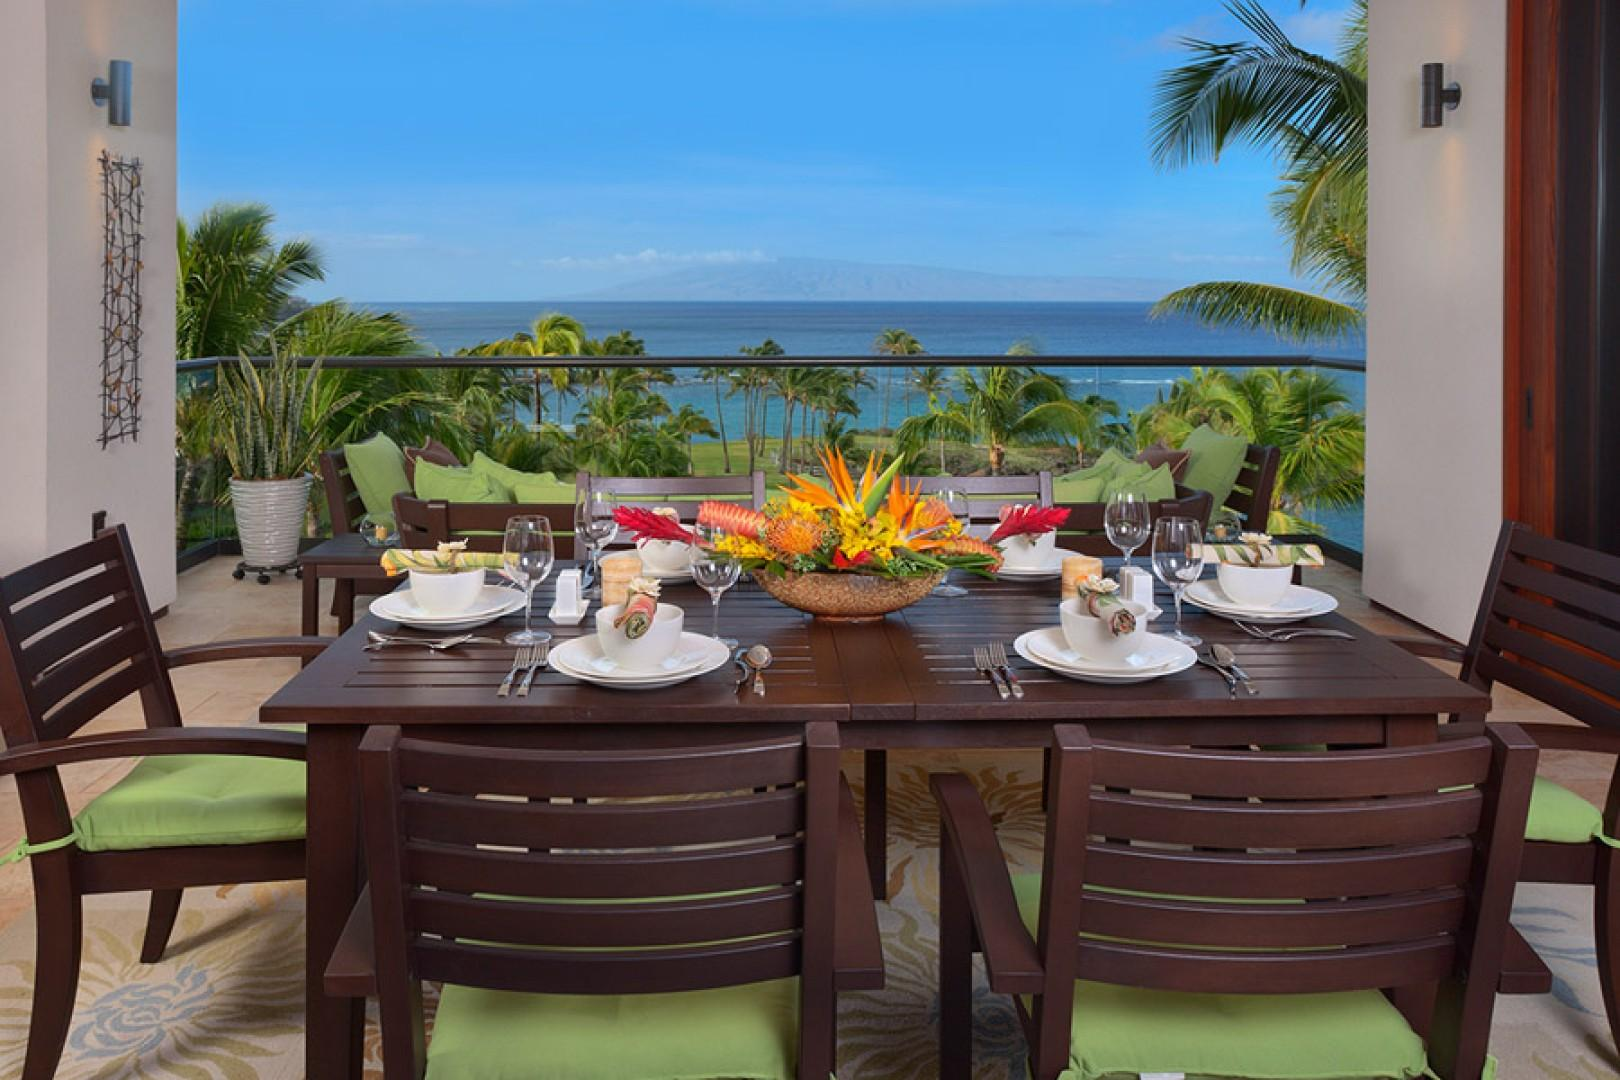 Sea Mist Villa 2403 - Ocean View Lanai Formal Dining Space and BBQ Area